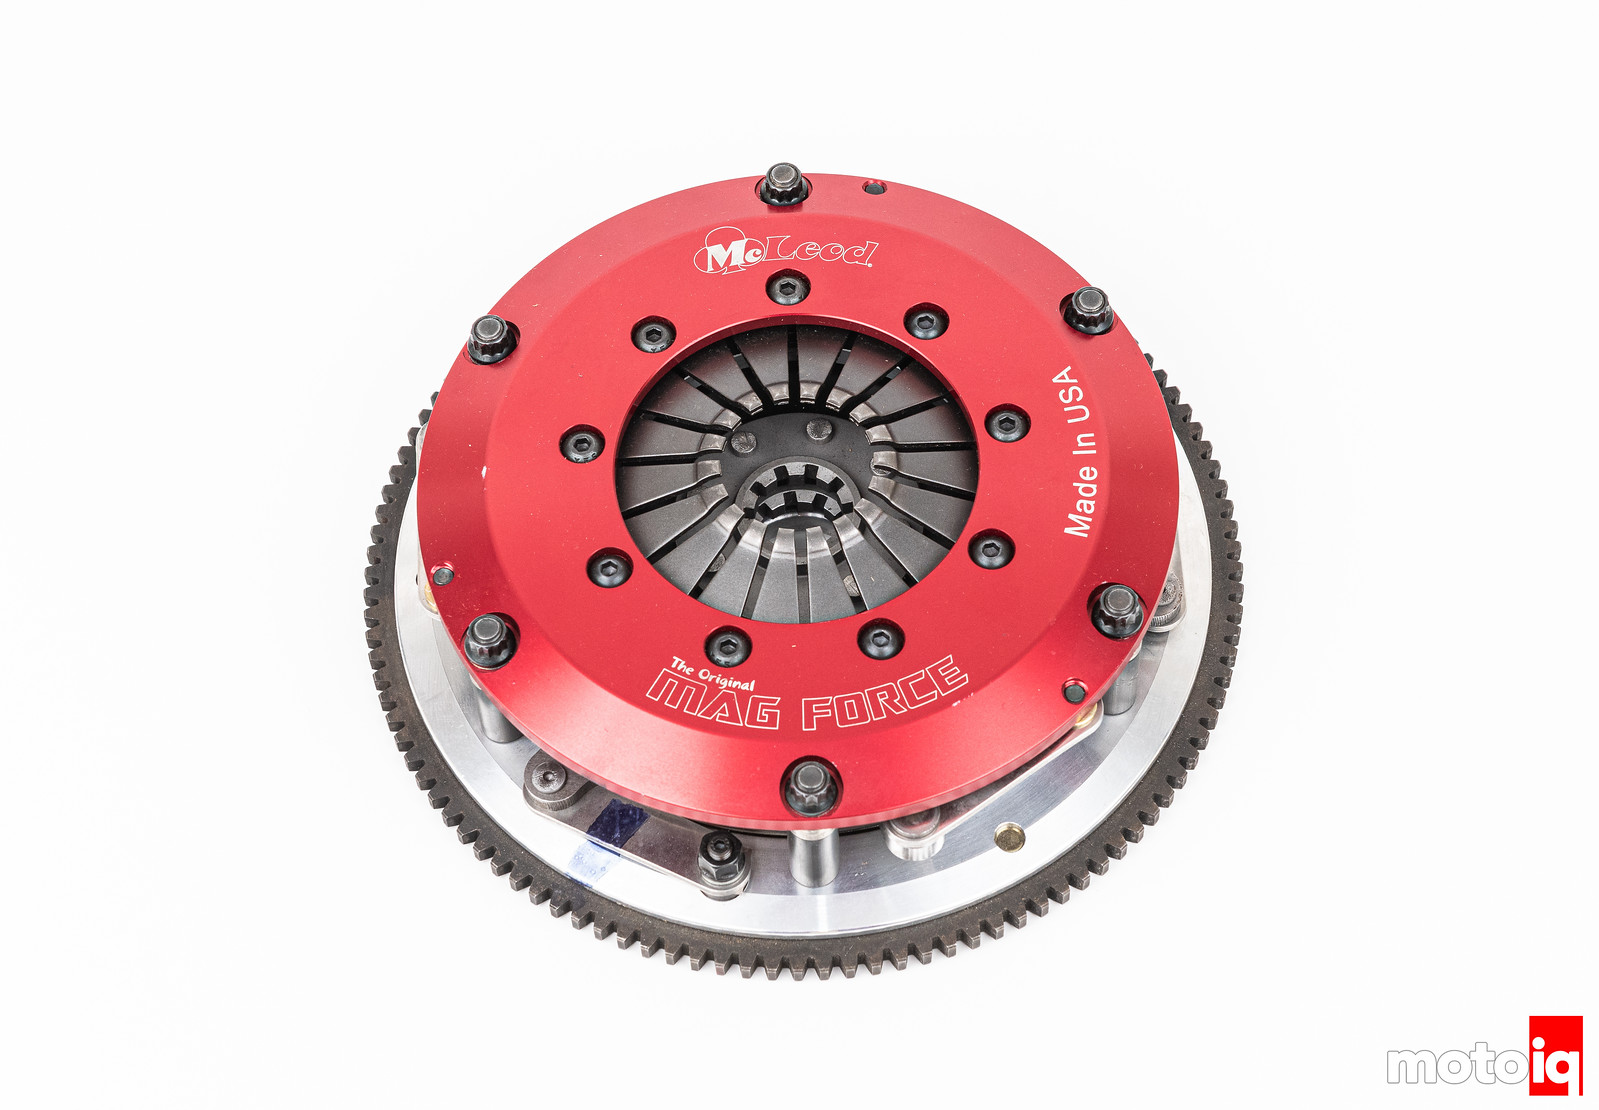 Mcleod Mag Force twin disc clutch